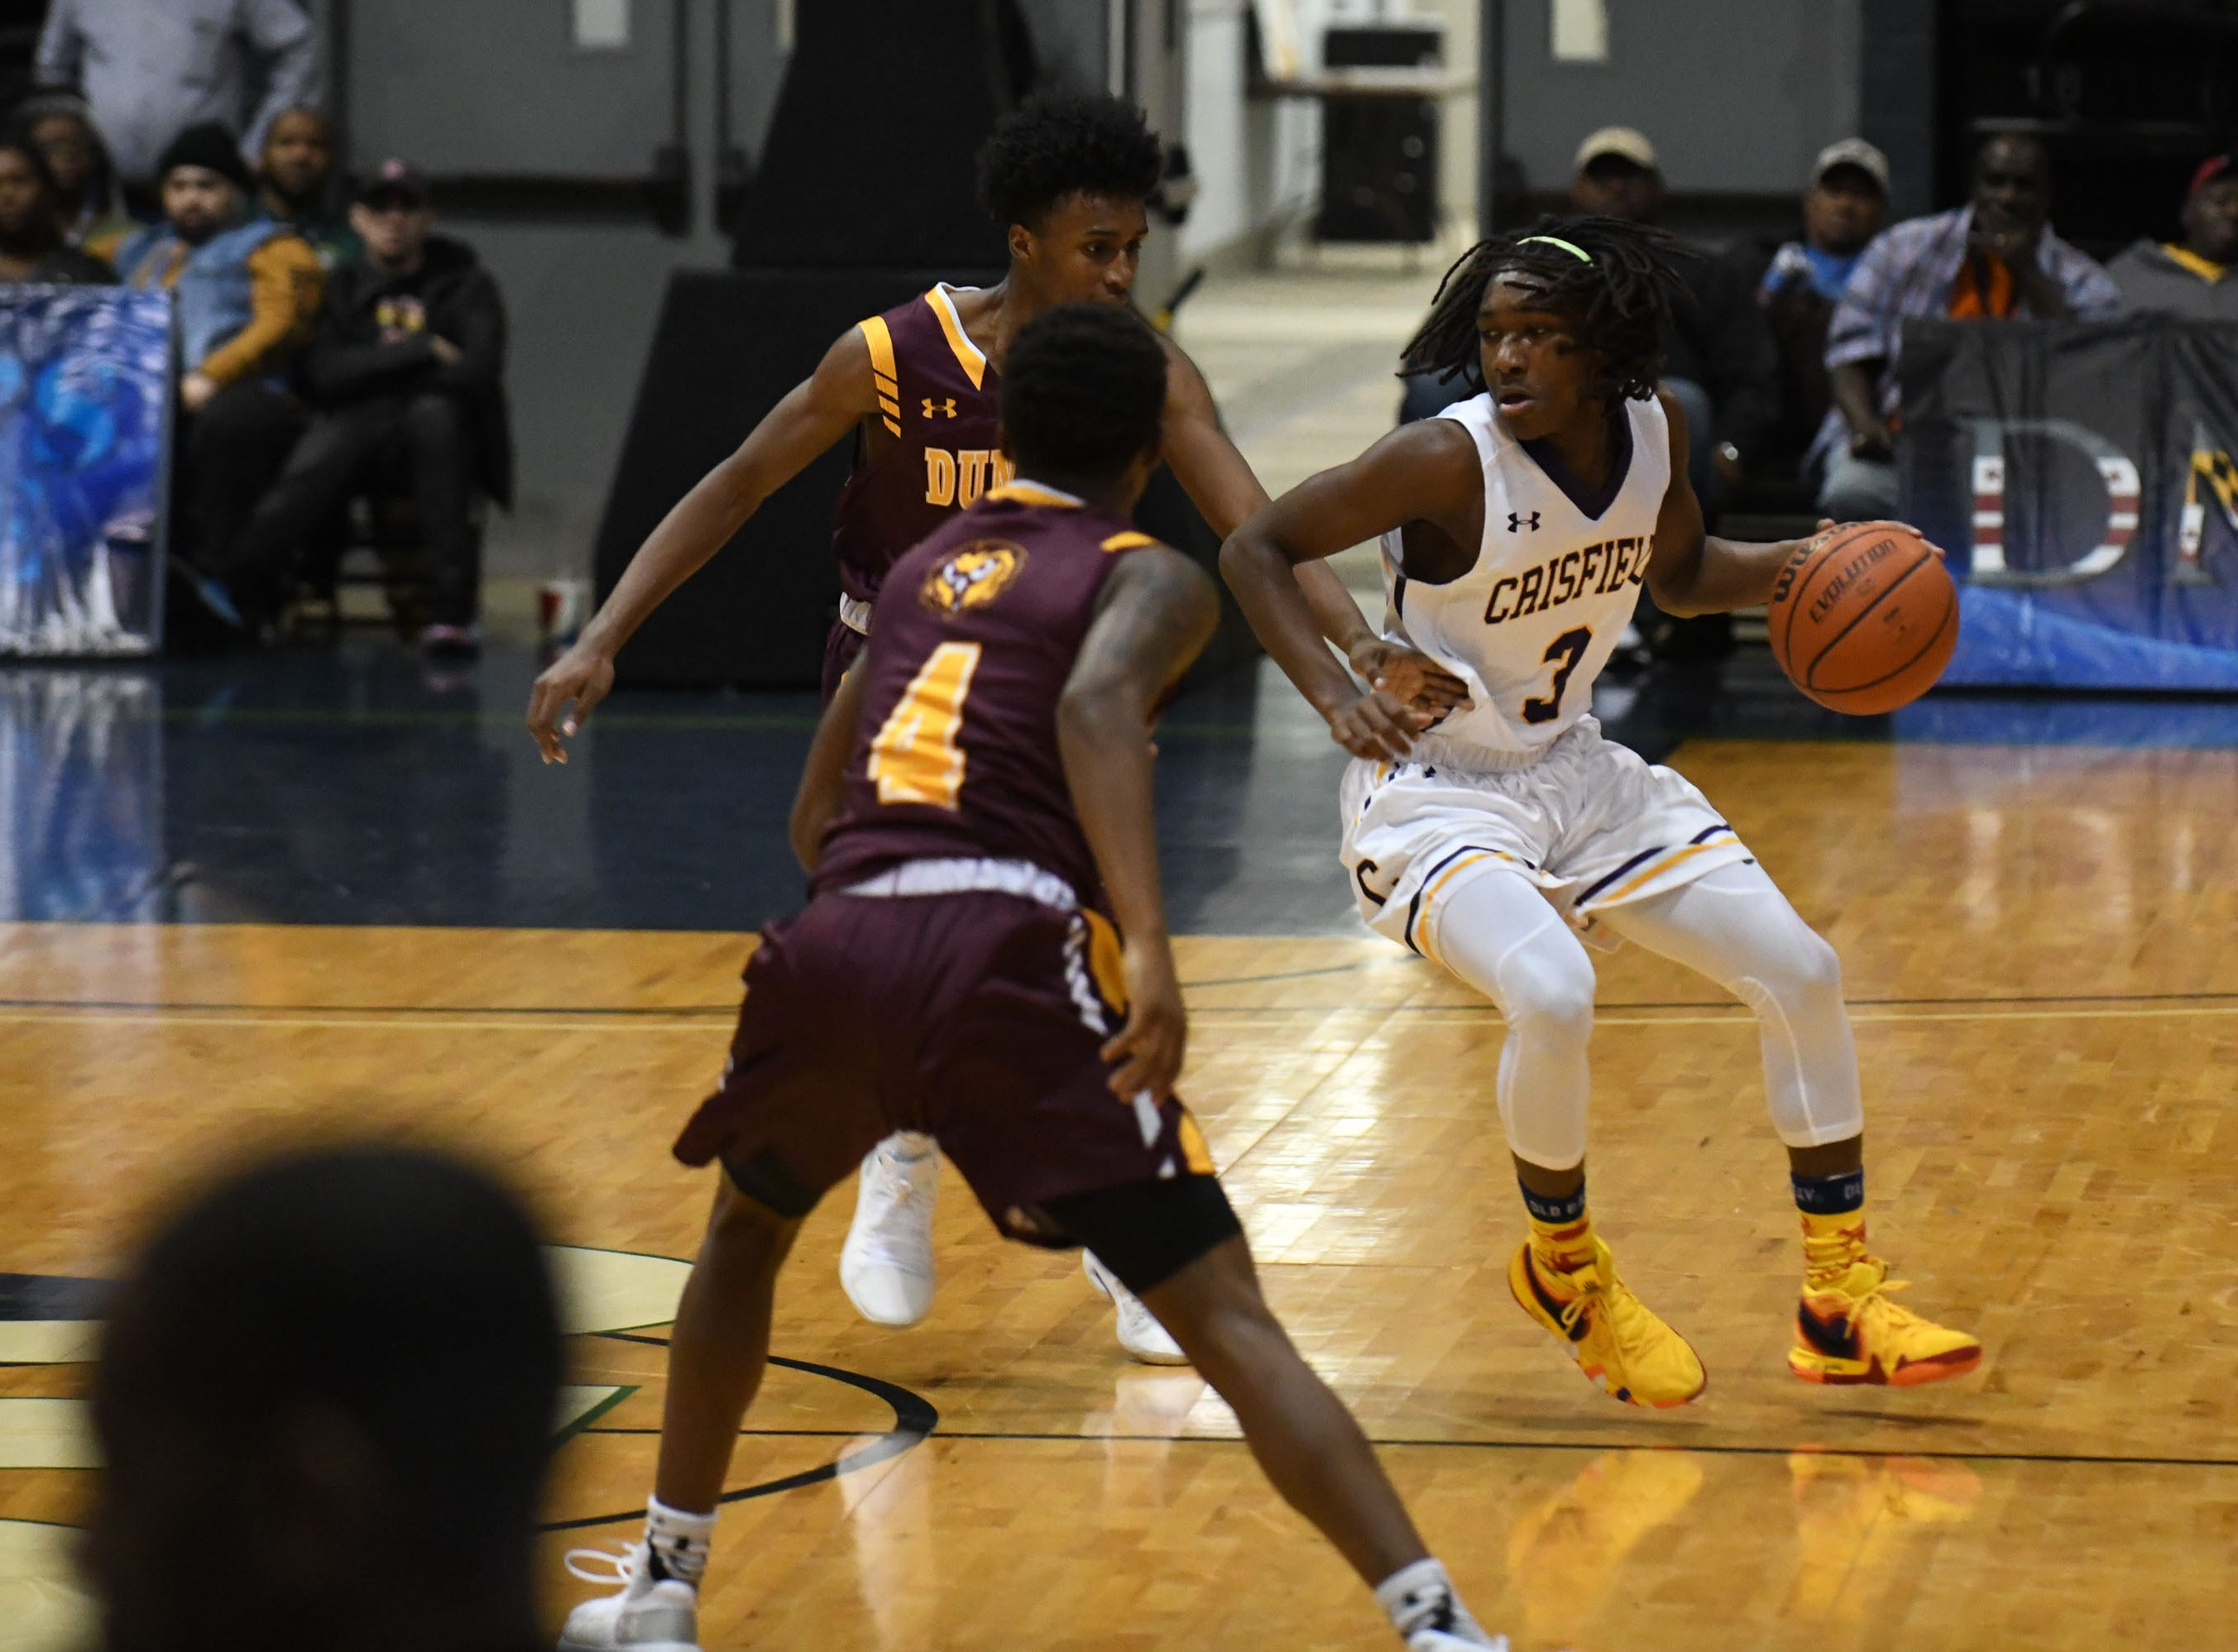 Crisfield's Ry'Kell Waters works the ball down the court against Dunbar on Thursday, Dec. 26, 2018 during the Governor's Challenge in Salisbury, Md.